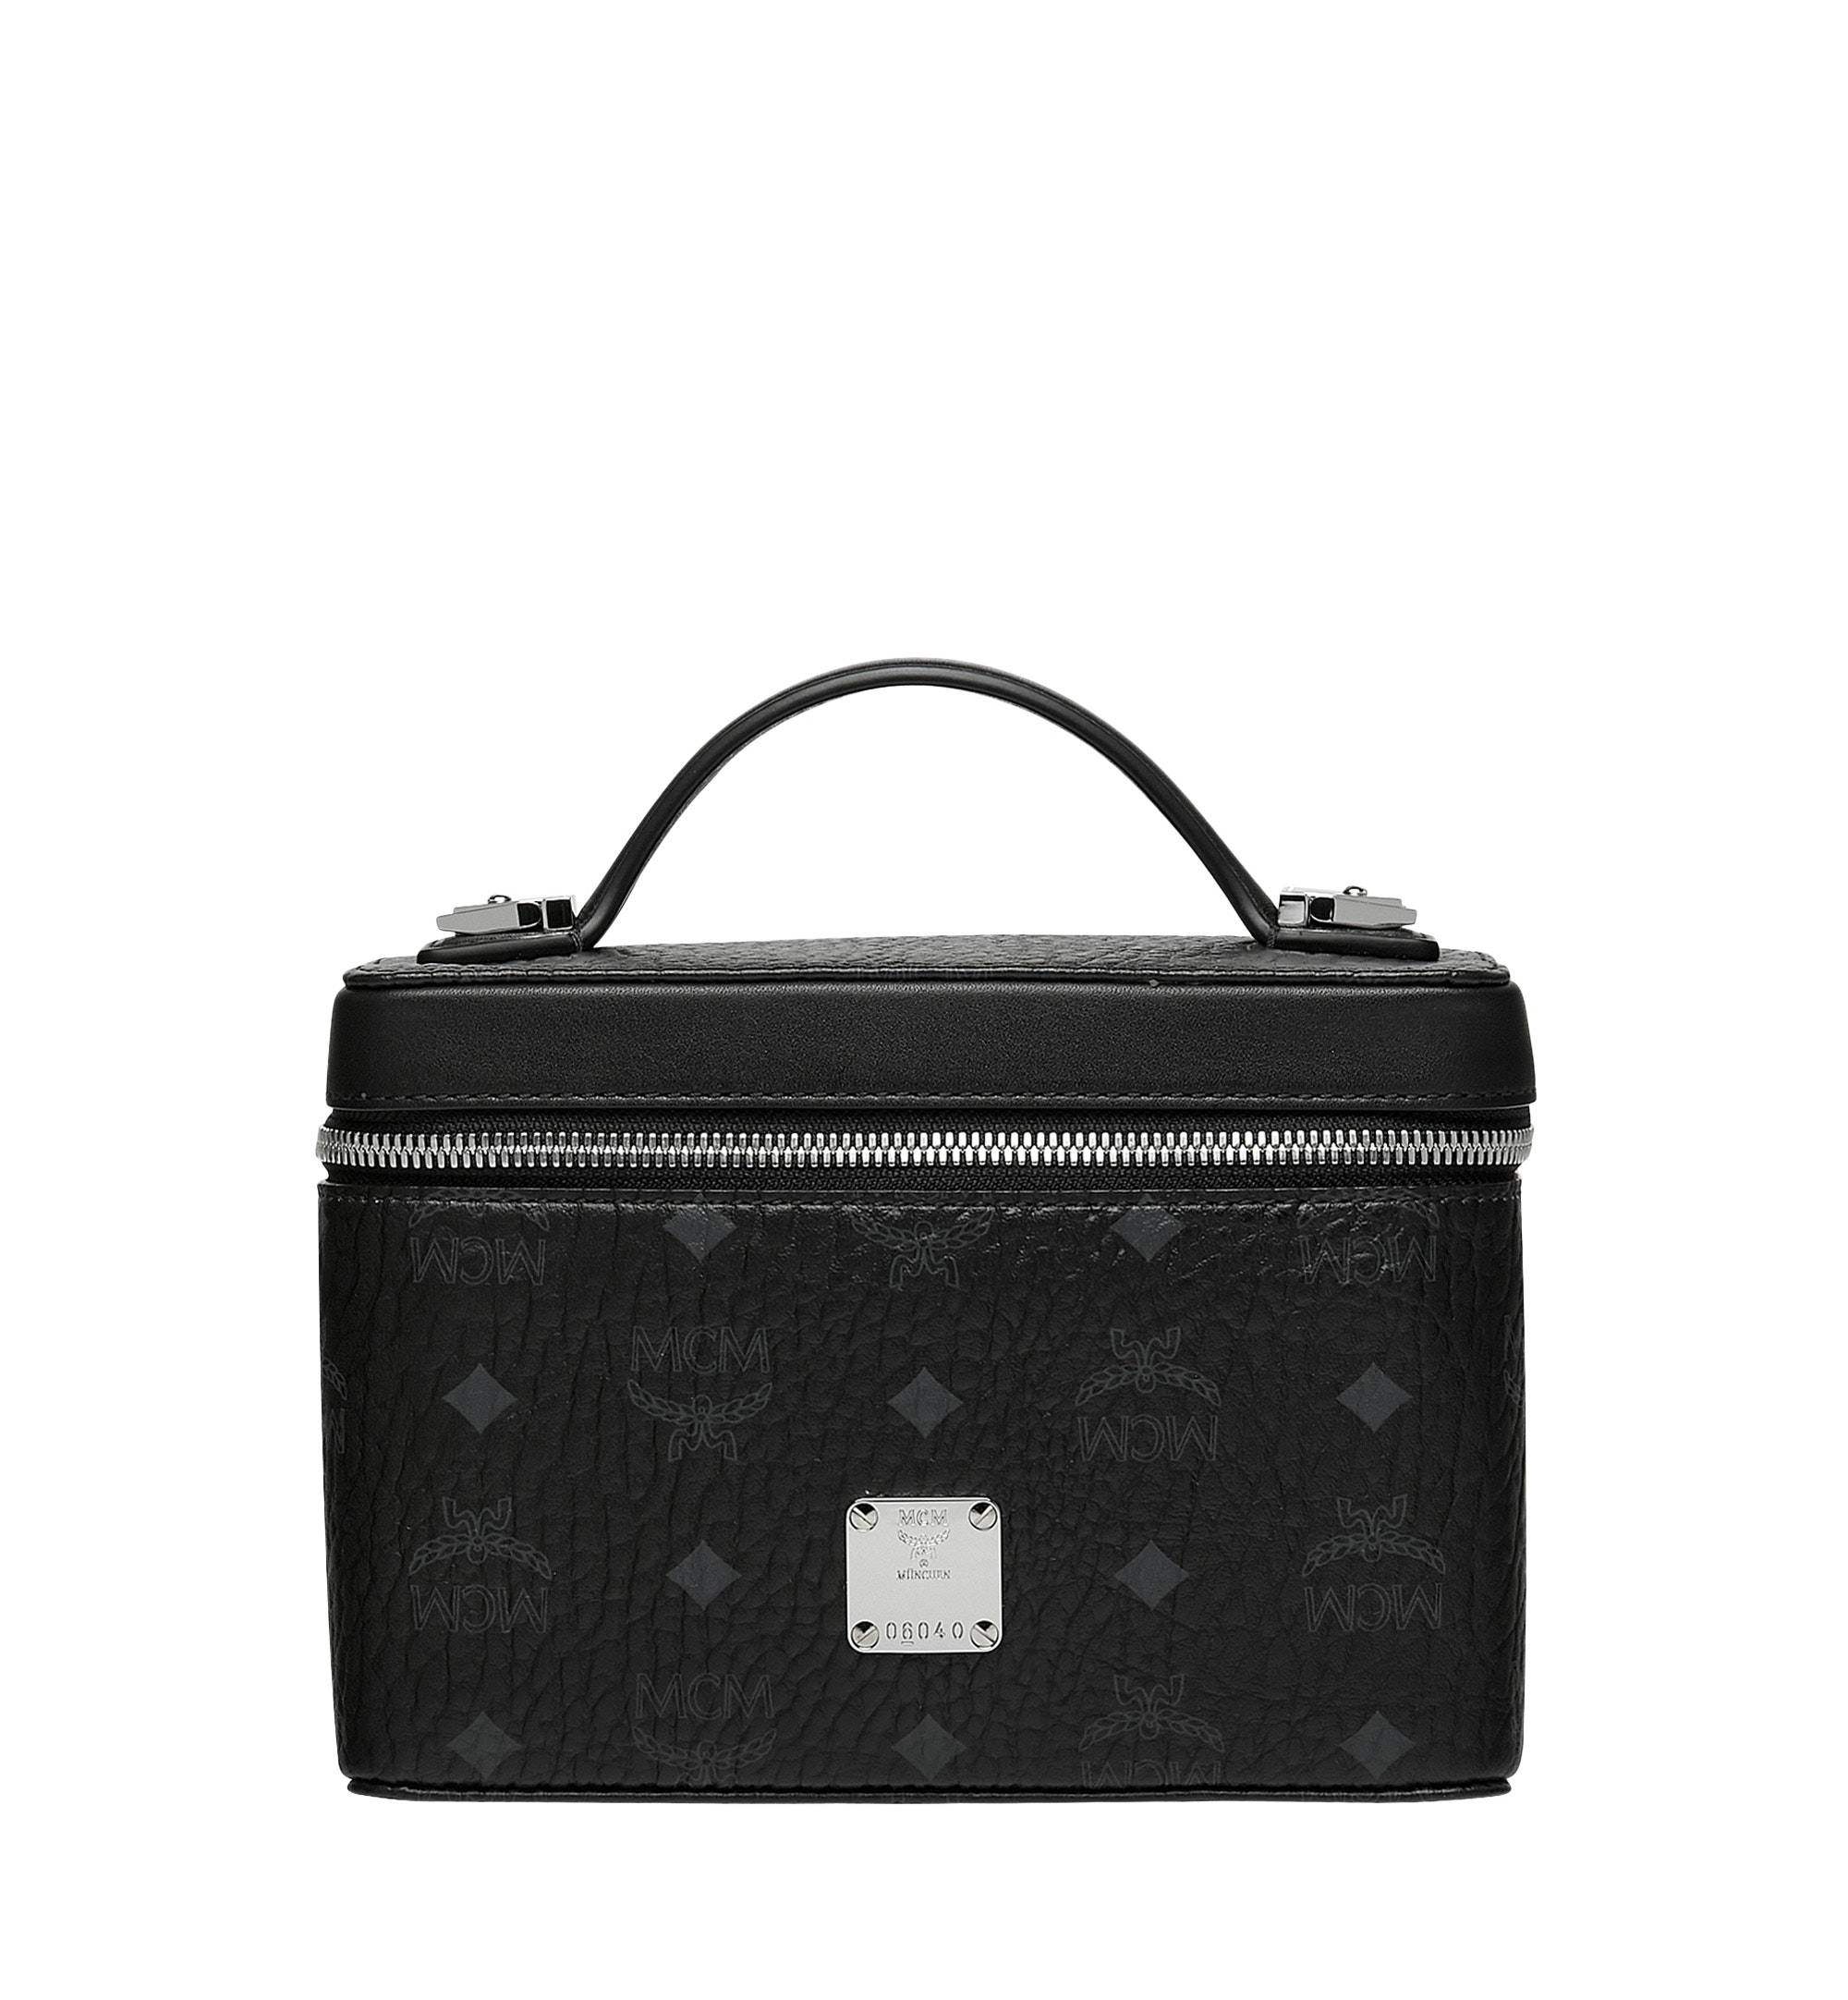 Mcm Vanity Case Visetos Small Black In Coated Canvas With Silver Tone